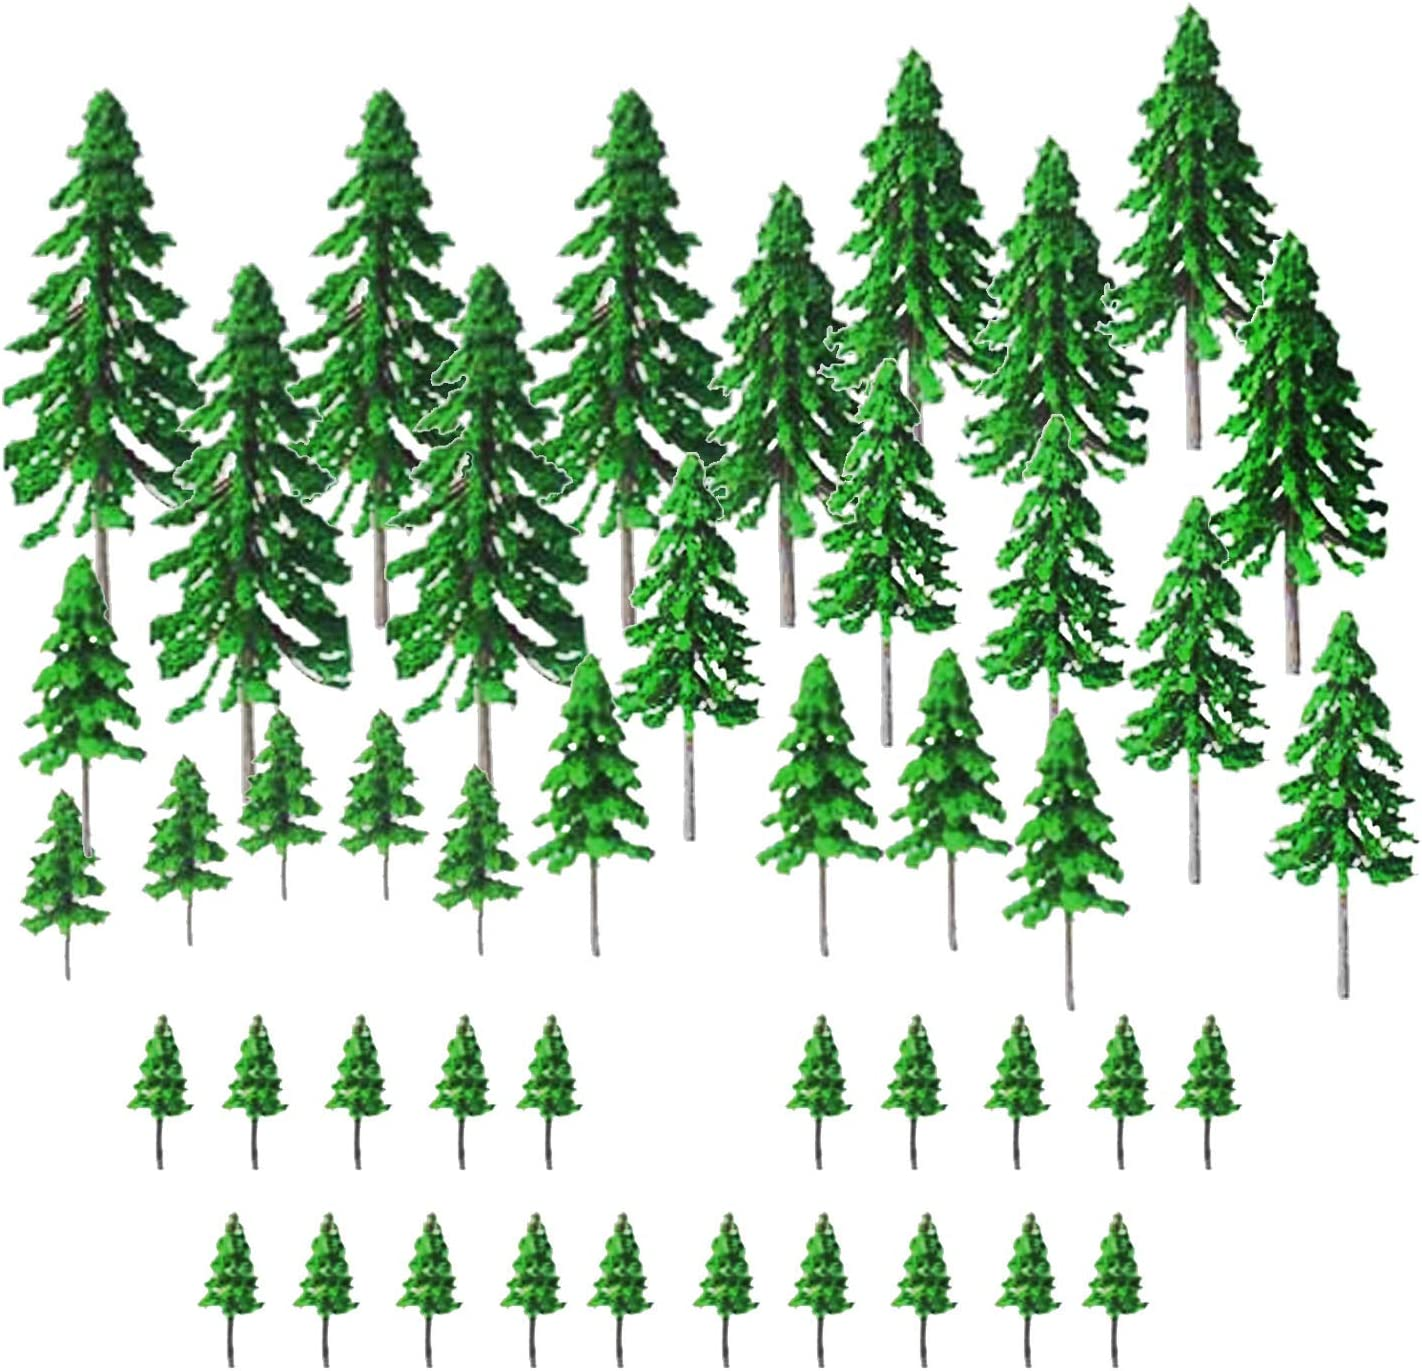 Woohome 45 PCS Model Tree Miniature Train Scenery Plastic Trees for Projects, Woodland Scenics DIY Crafts Landscape Building Office Home Sand Table Decor, 2 Inch ~ 5.9 Inch